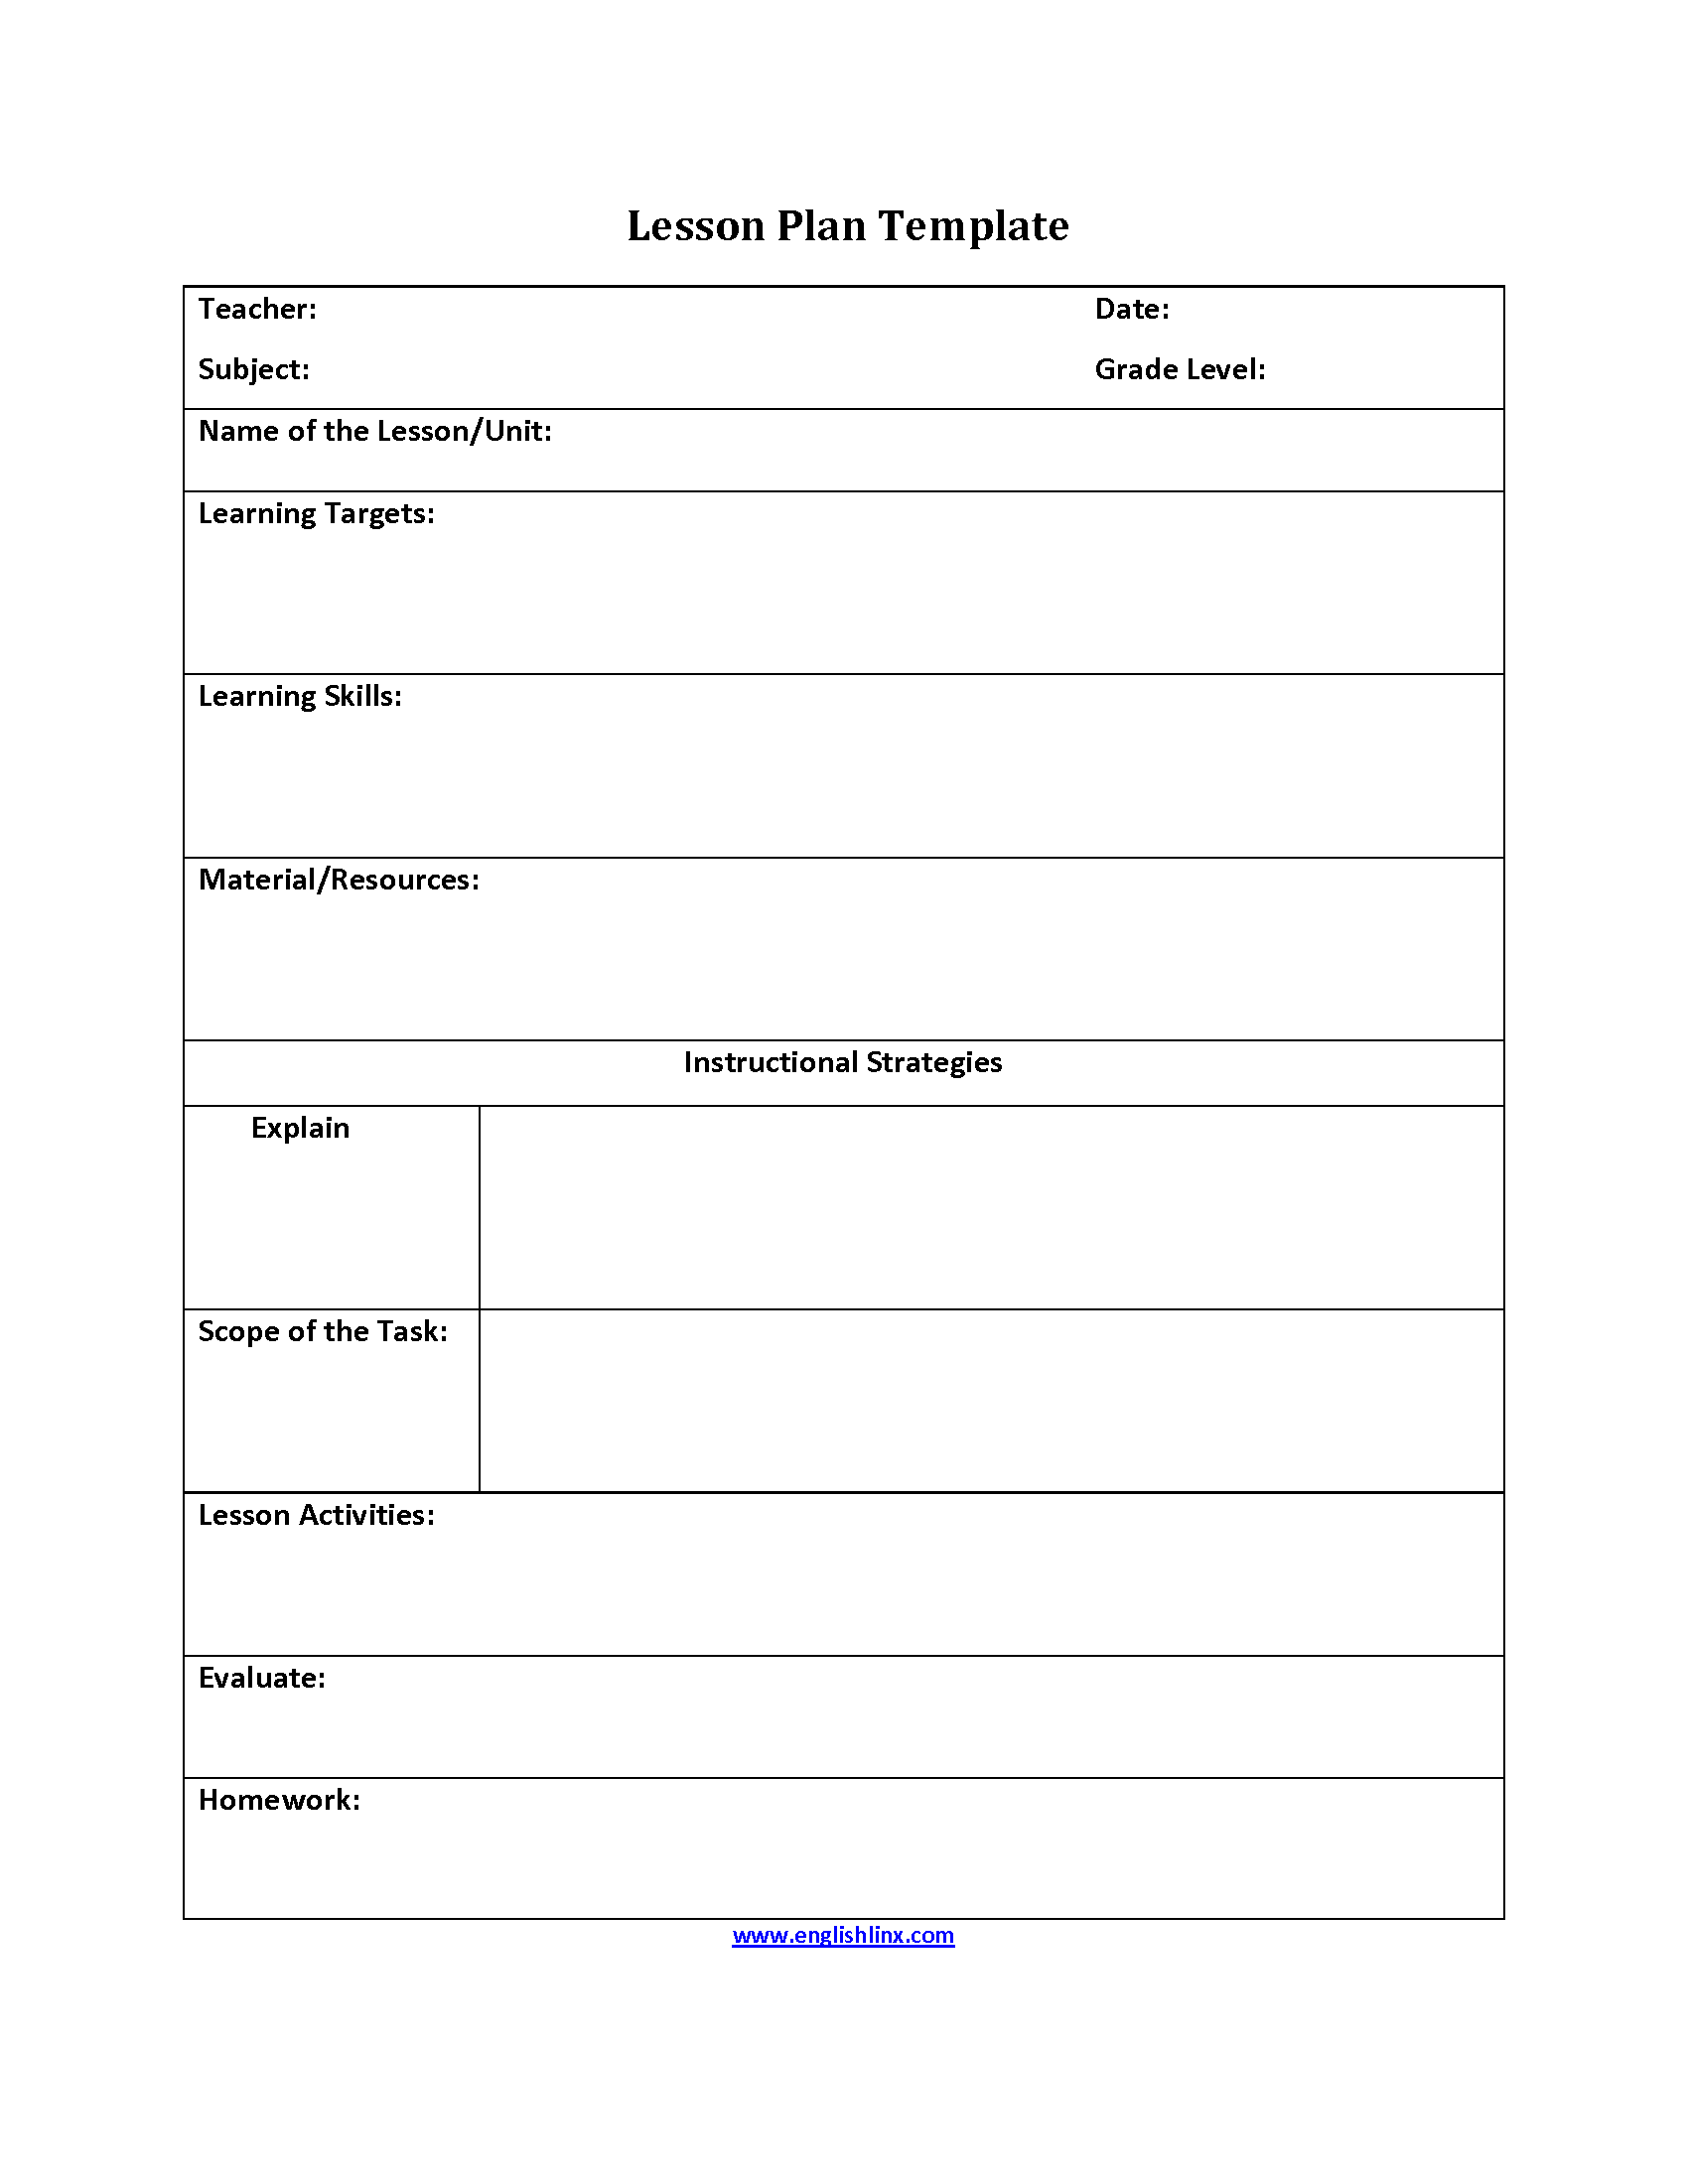 Englishlinxcom Lesson Plan Template - Template lesson plan